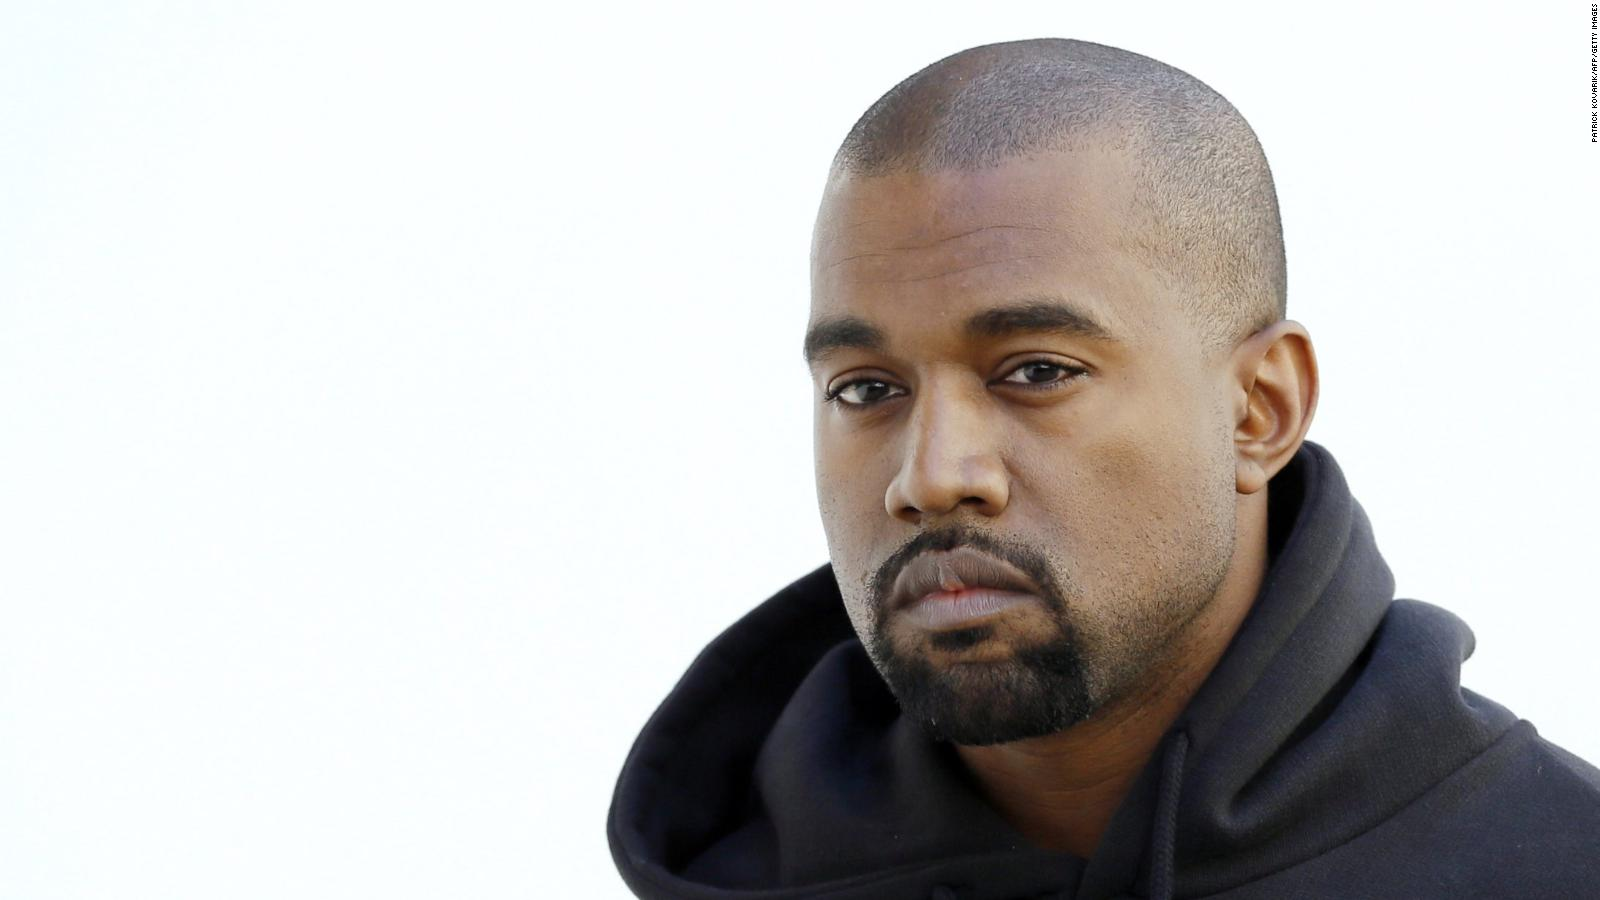 Kanye 'Ye:' The most controversial lyrics from West's new album - CNN